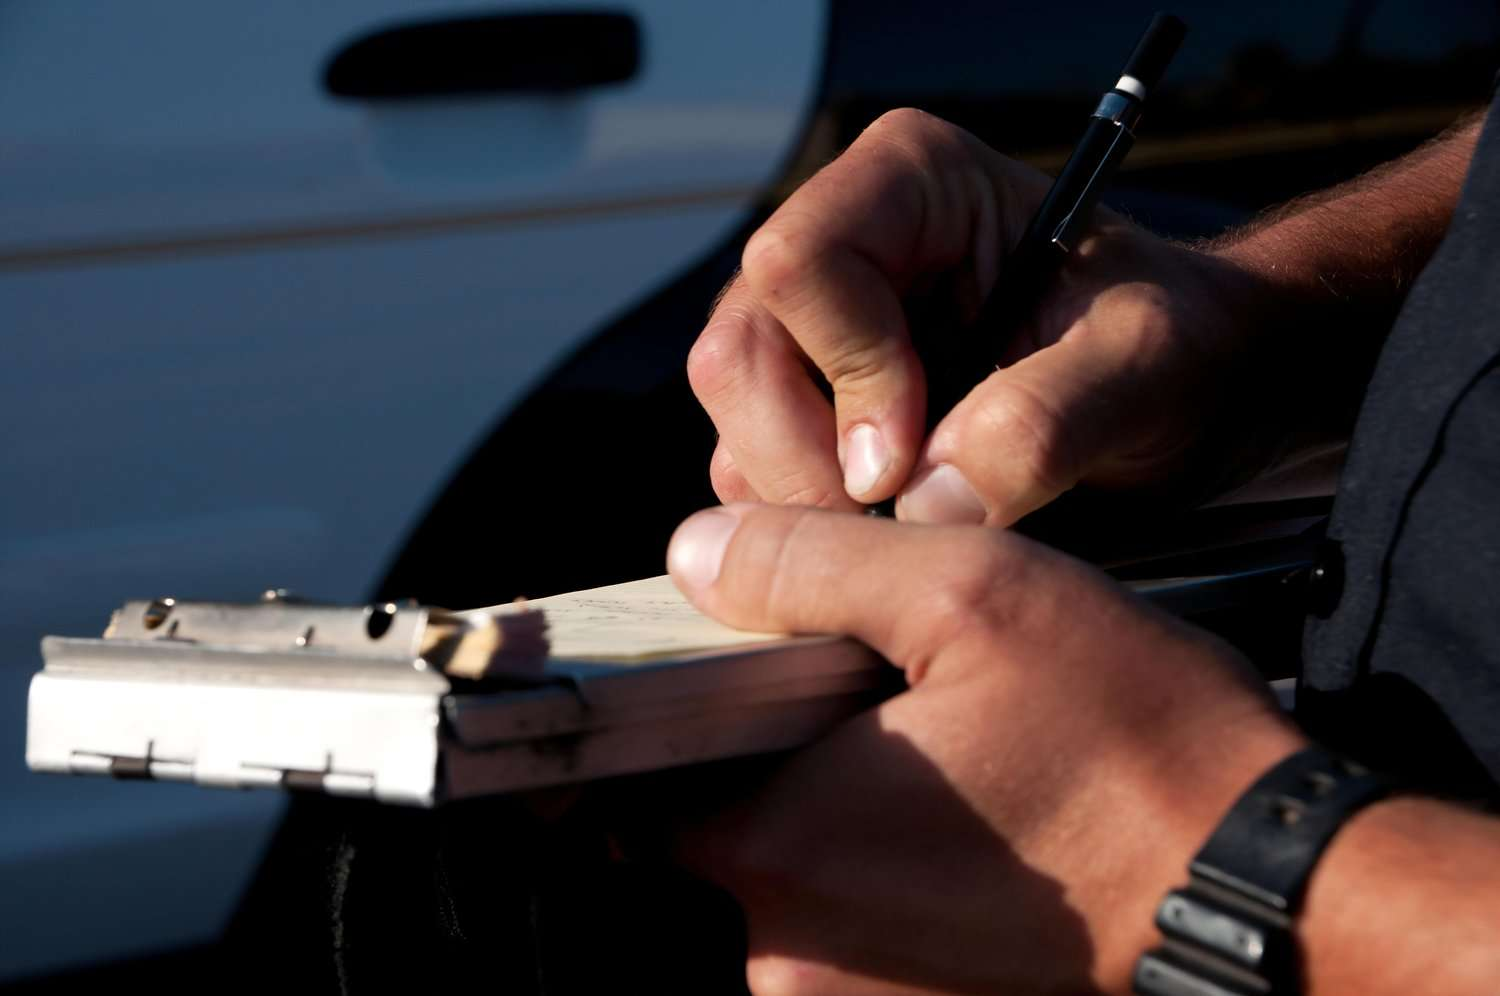 Traffic ticket lawyer: Police officer writes a traffic ticket